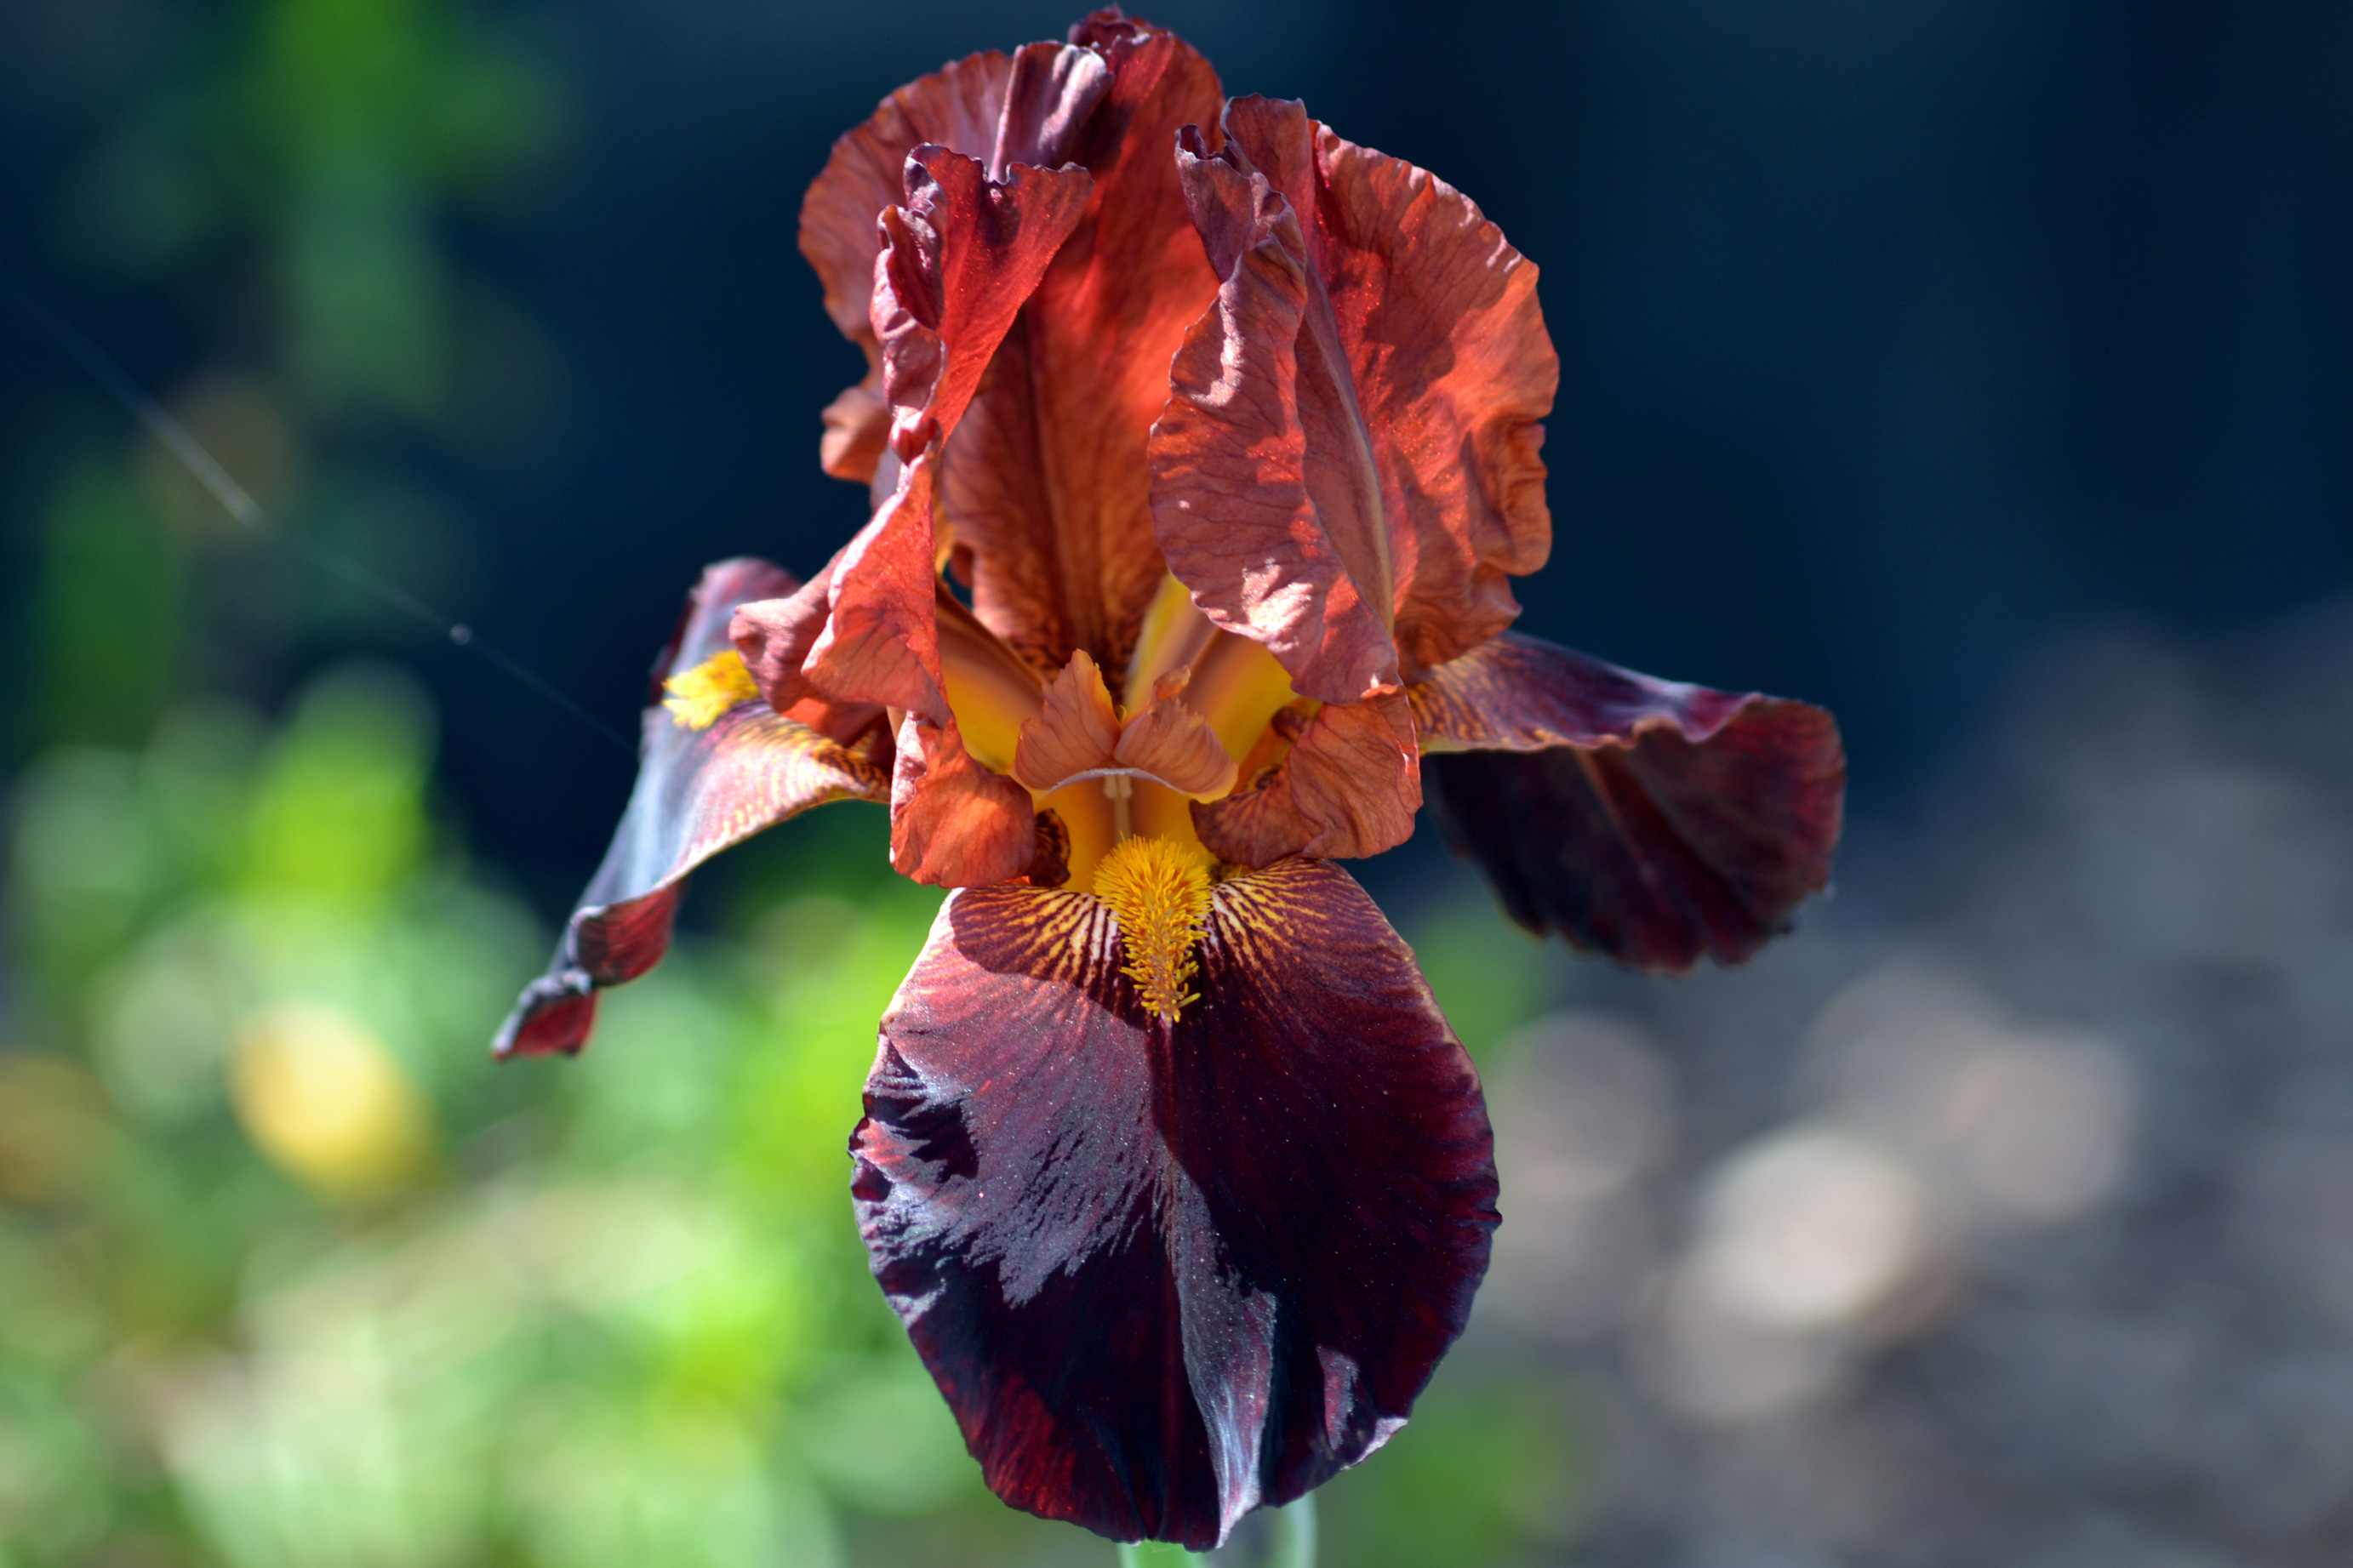 The language of flowers iris gardens for goldens iris rust 413 izmirmasajfo